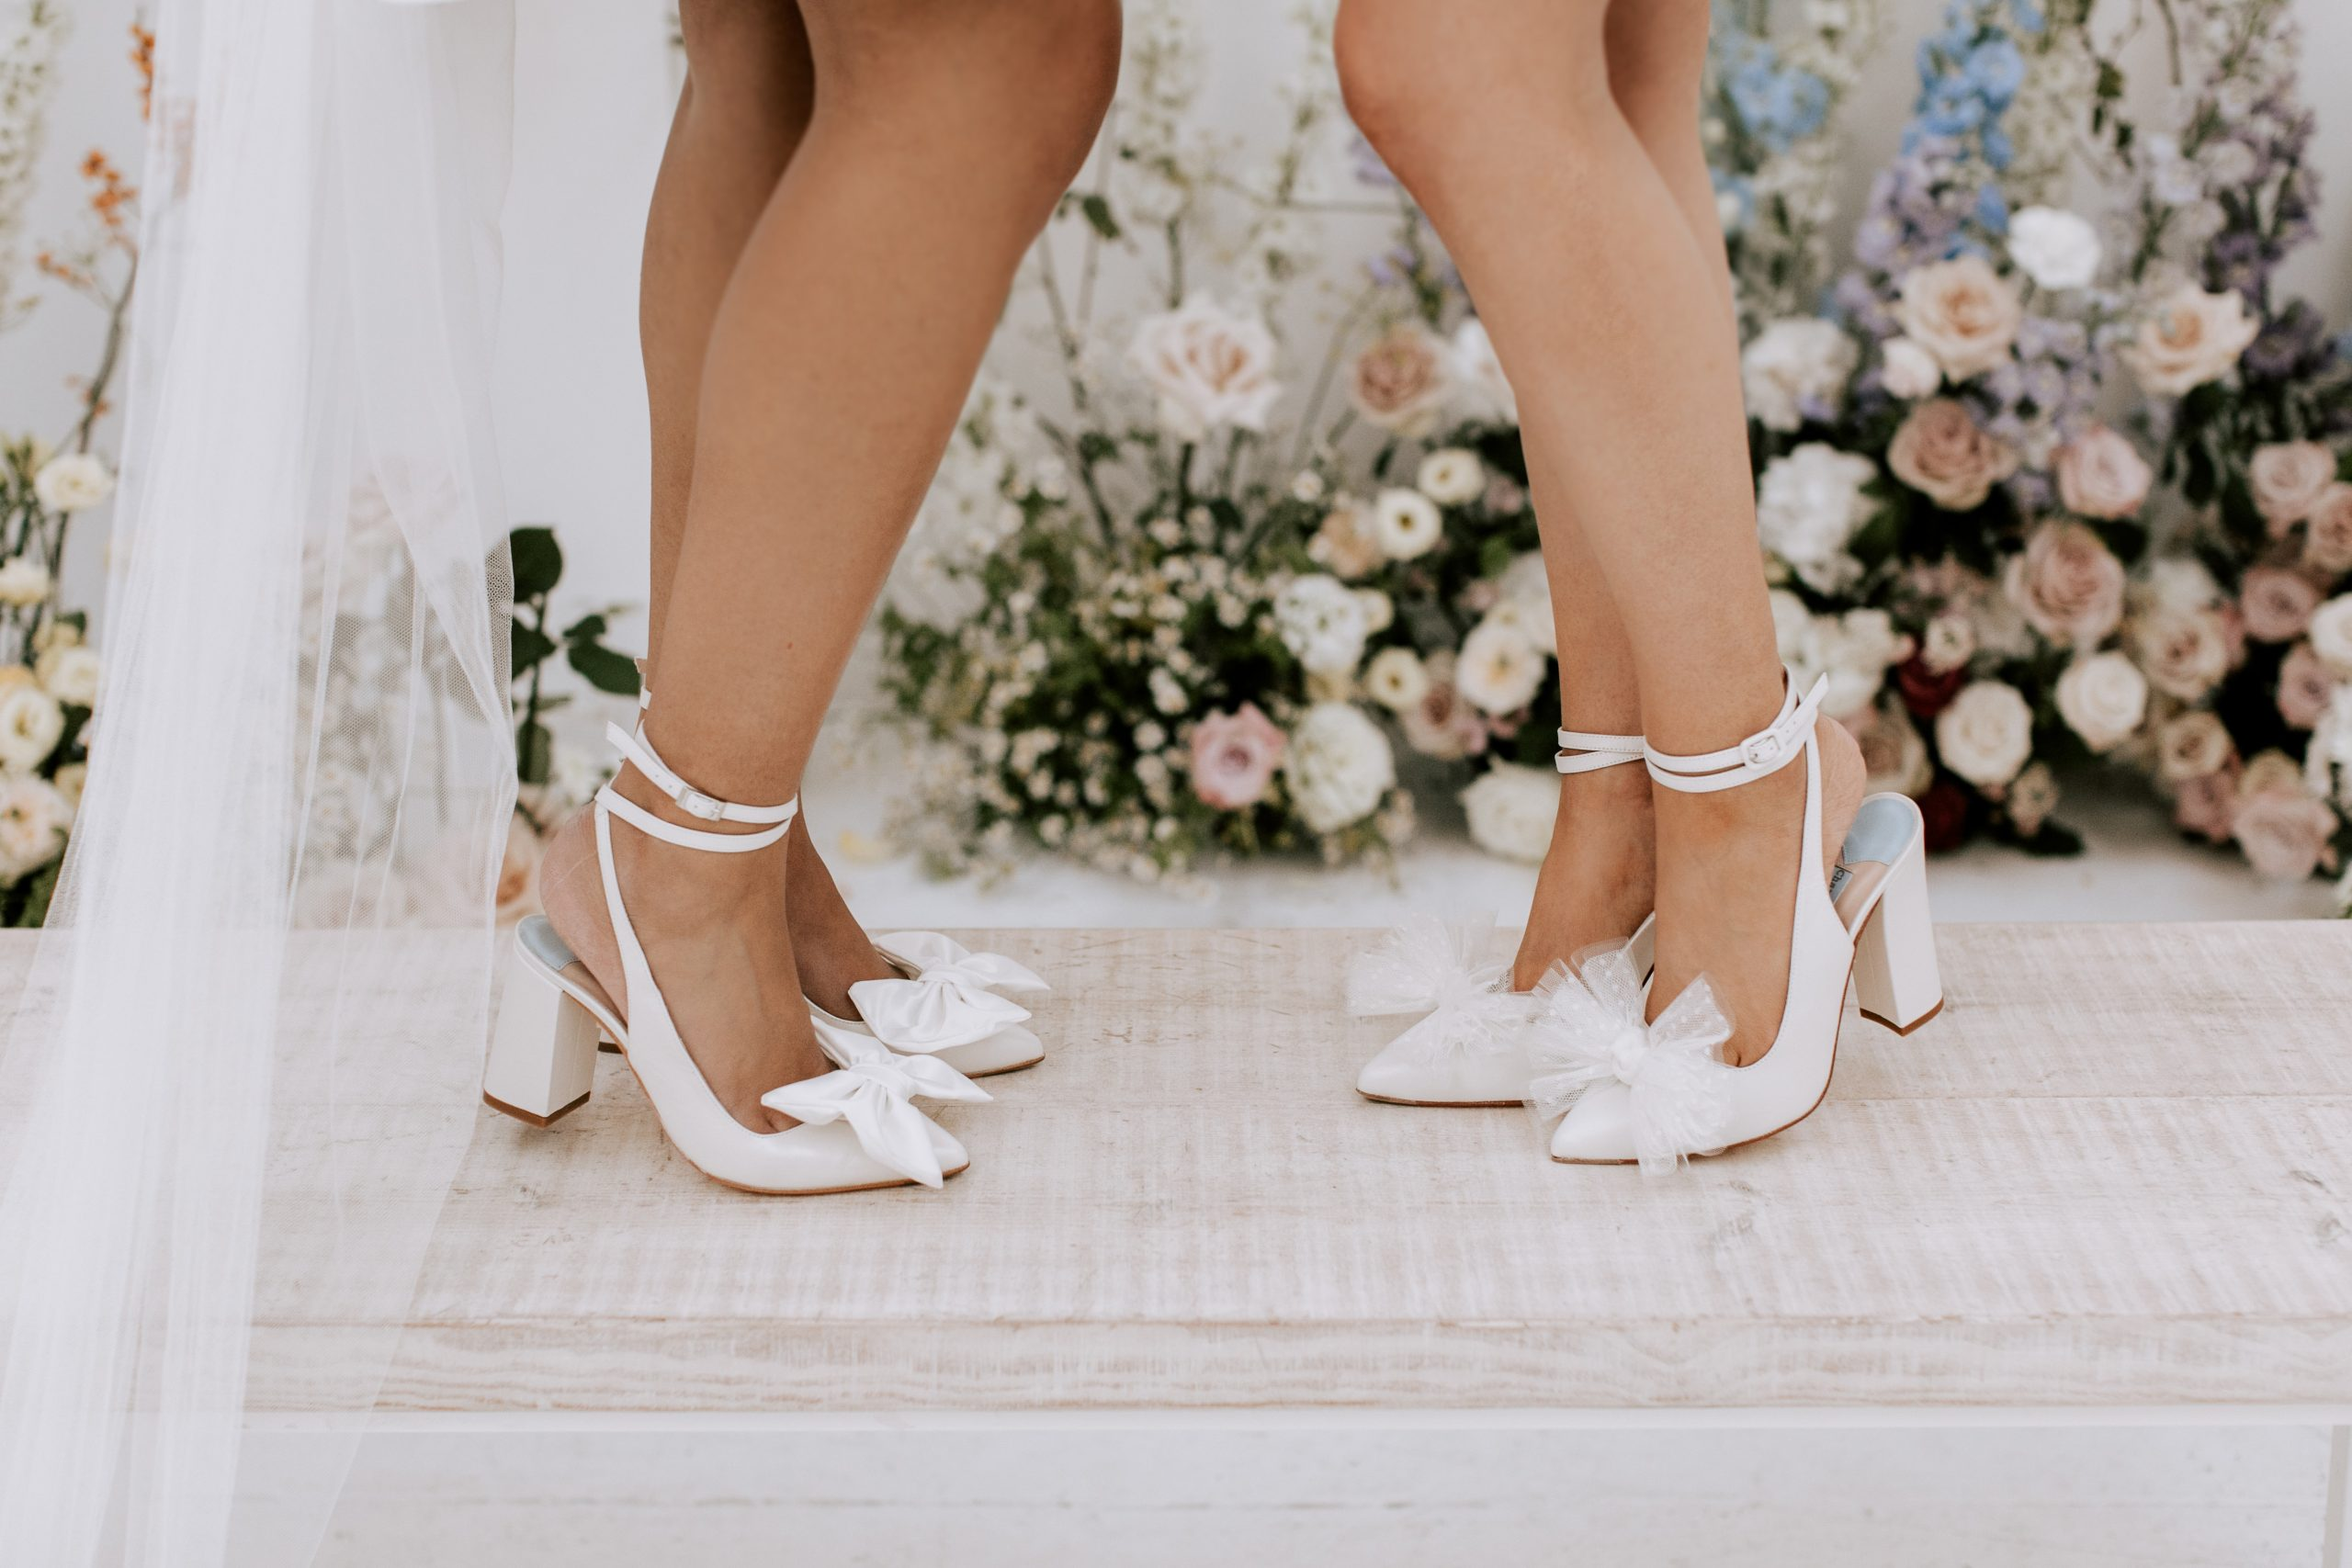 Charlotte Mills Bridal Shoes Introducing The 2021 Going To The Chapel Collection Win A Pair Of Wedding Shoes Of Your Choice Worth 280 Love My Dress Uk Wedding Blog Wedding Directory